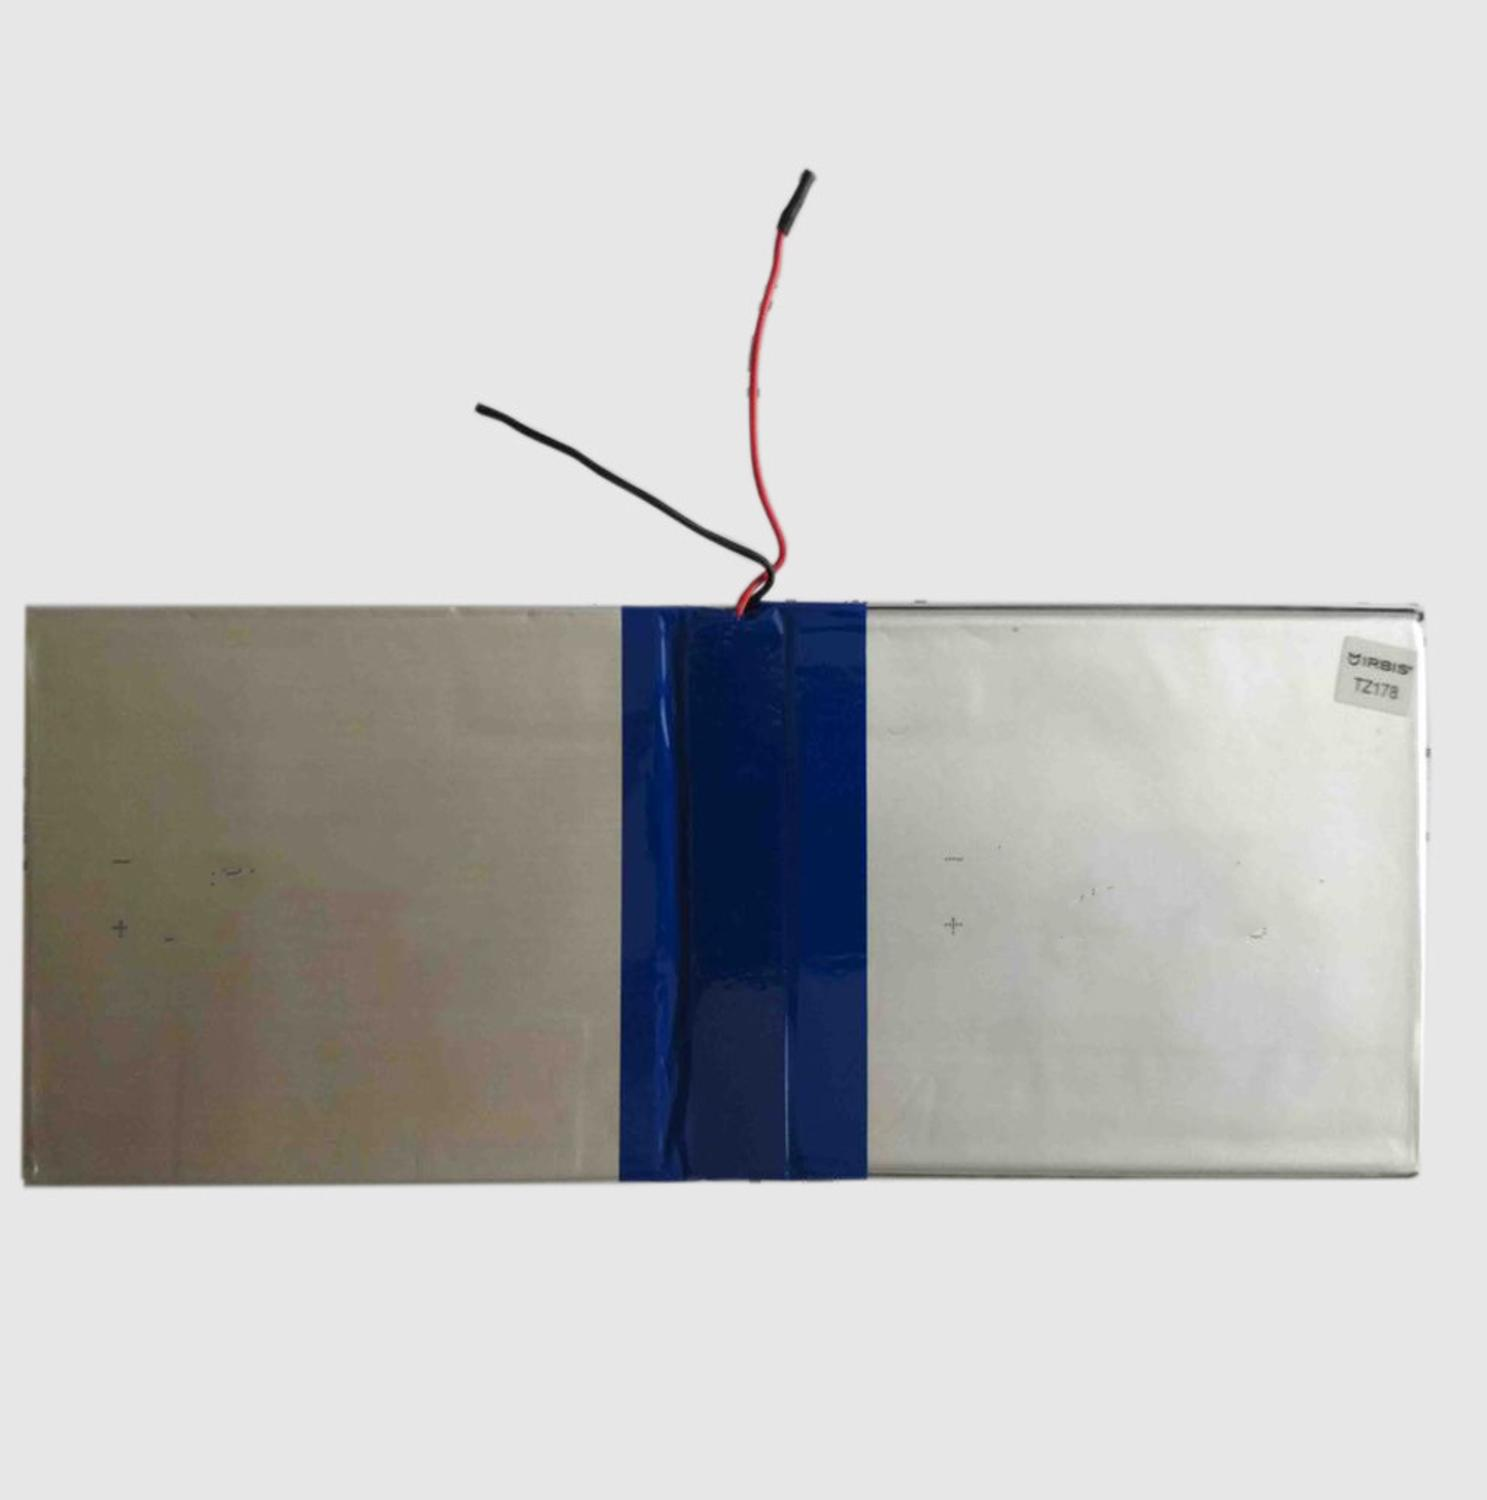 Battery for CHUWI Hi9 Air 10.1 Inch Tablet PC CWI546 New Li-polymer Rechargeable Accumulator Pack Replacement <font><b>3.7V</b></font> 8000 mAh image